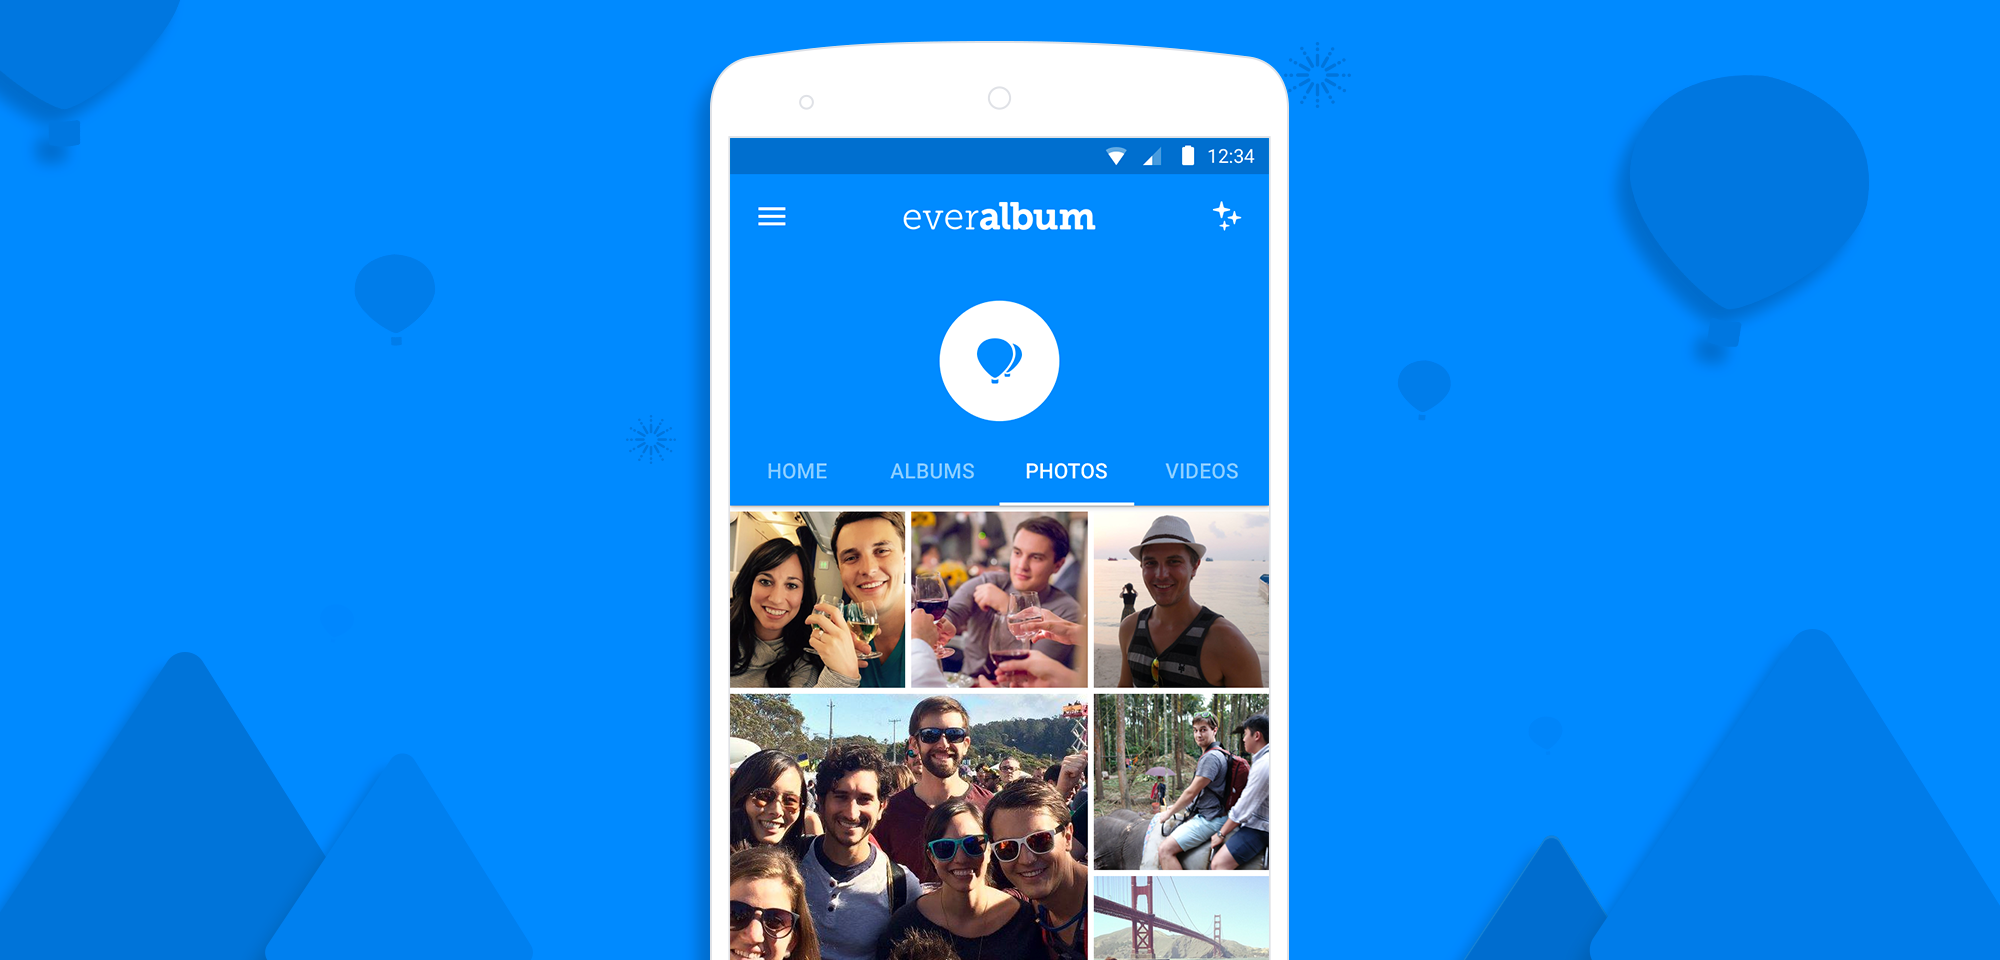 Everalbum for Android